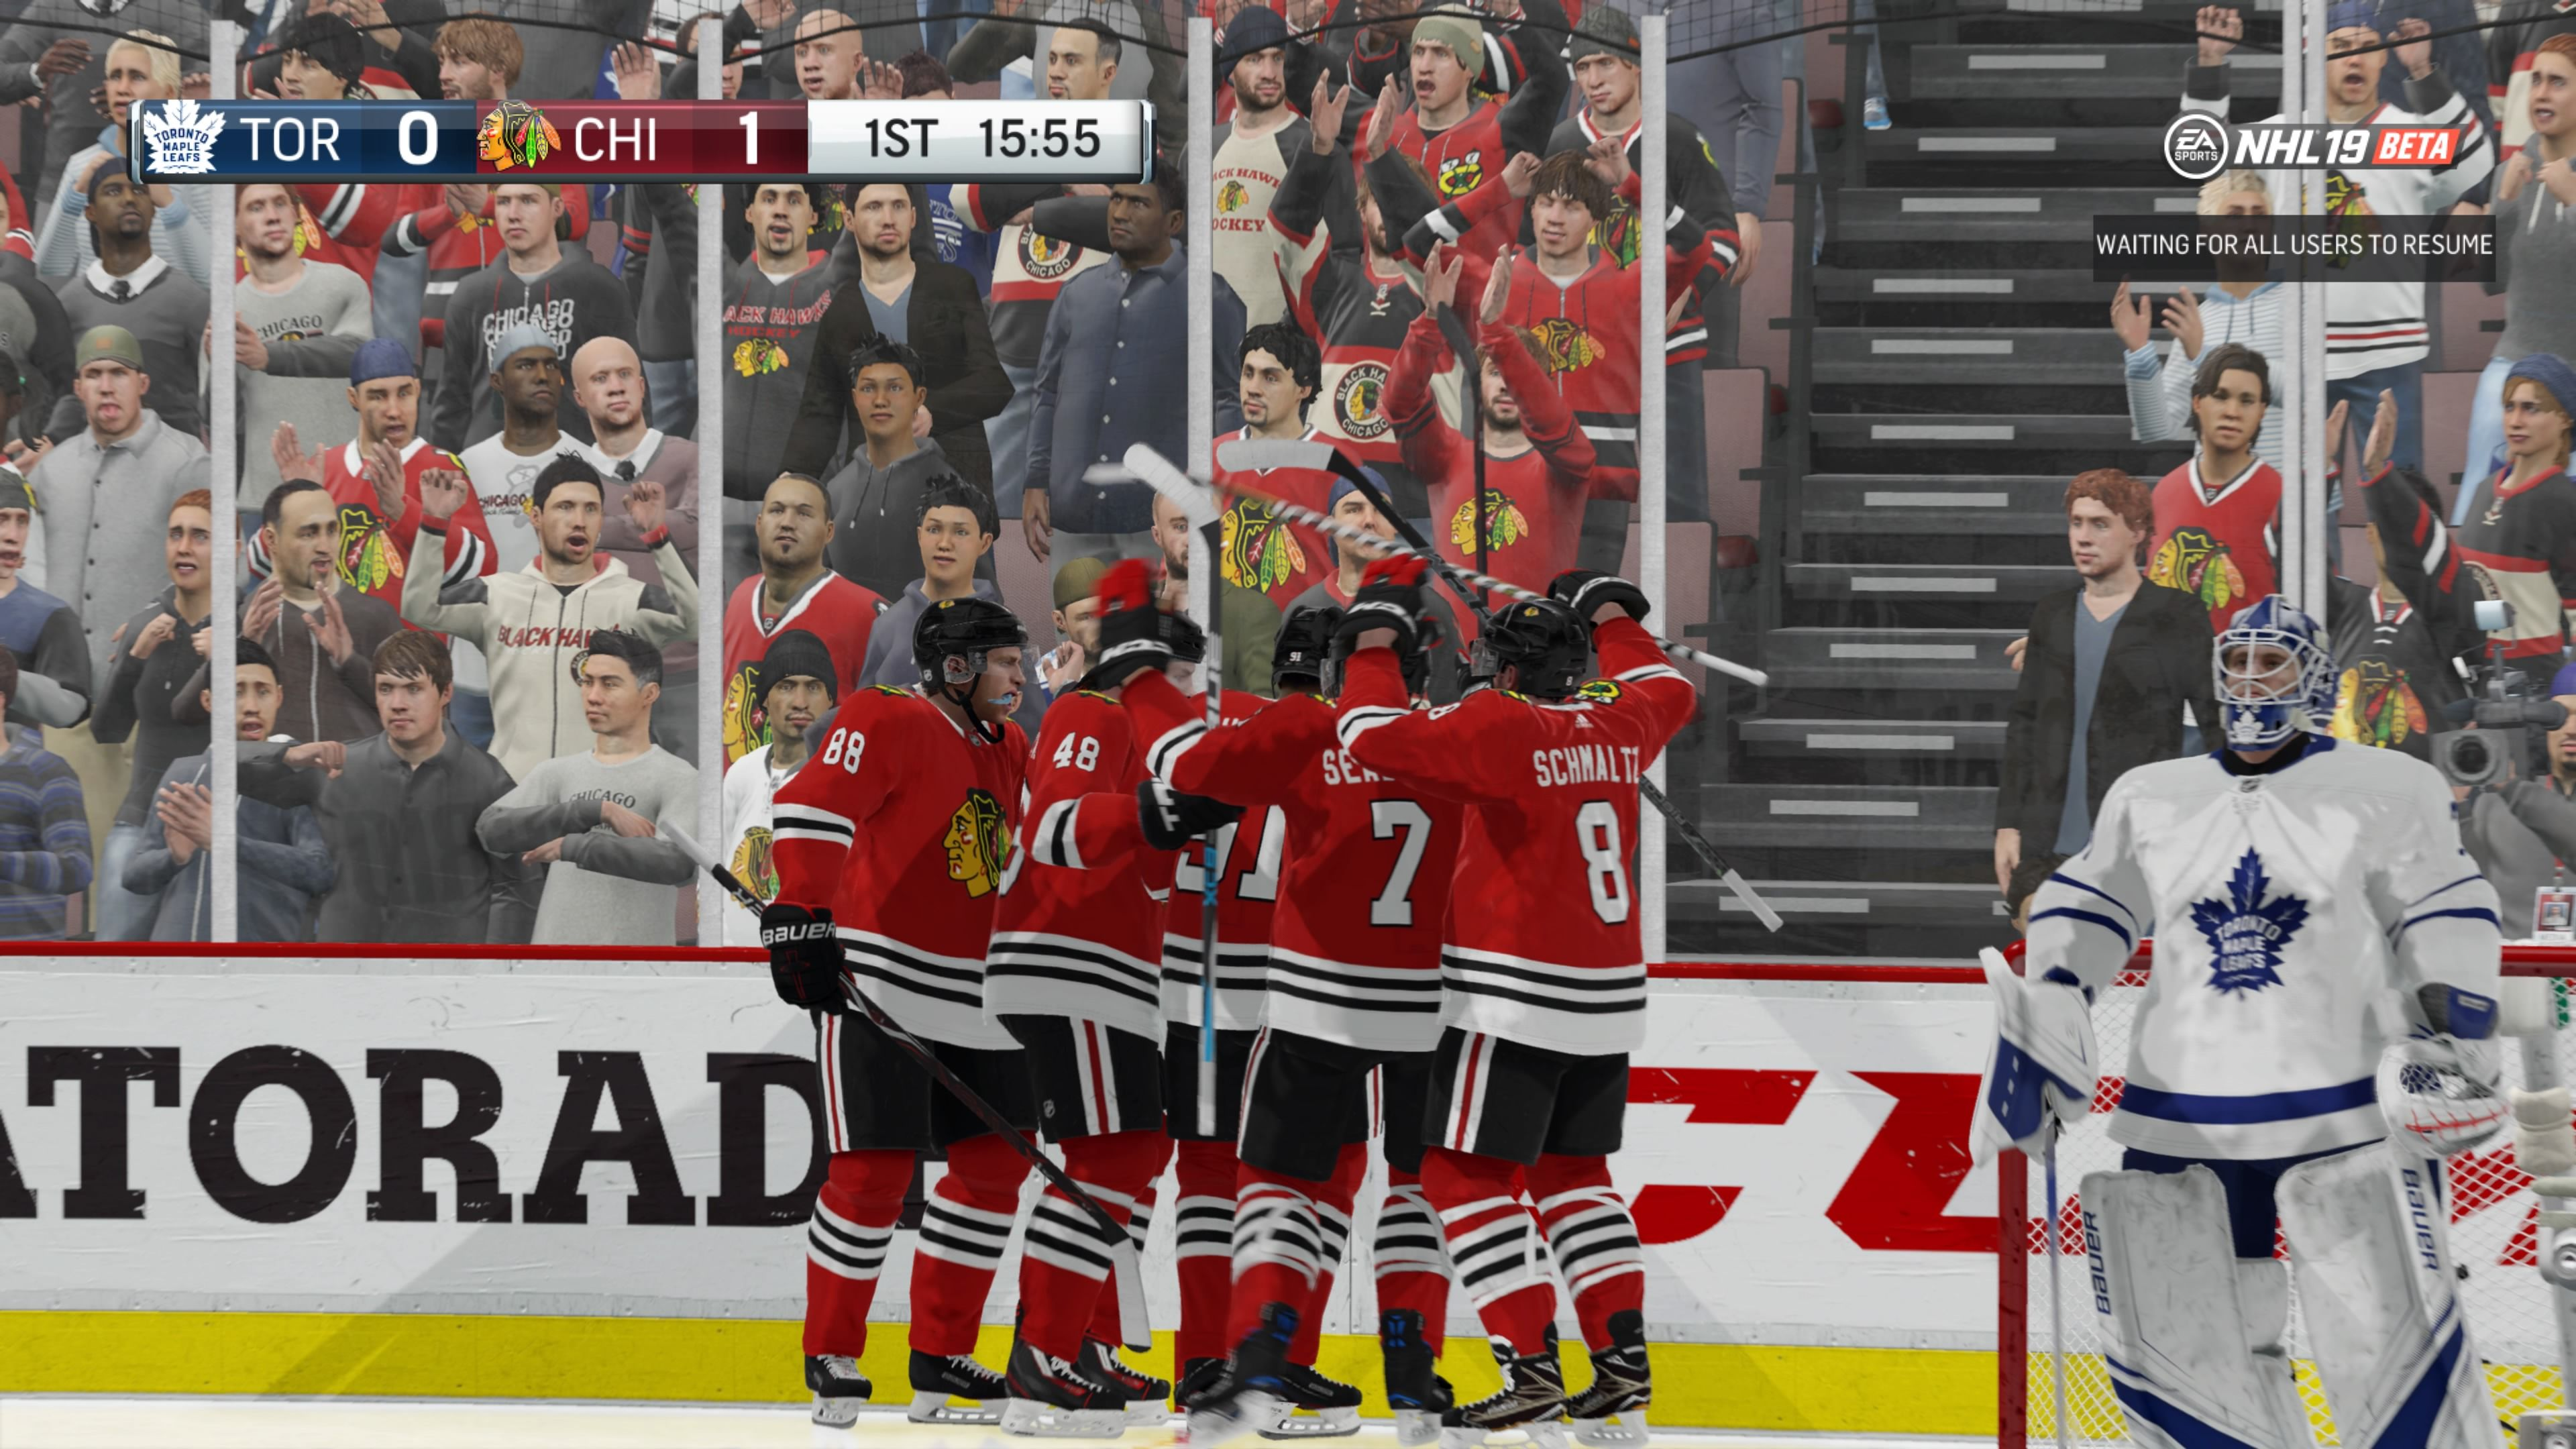 ffa75af402c It s almost hockey season and EA is allowing everyone to test NHL 19 before  the game releases next month. Find out if it s an upgrade over NHL 18 here!